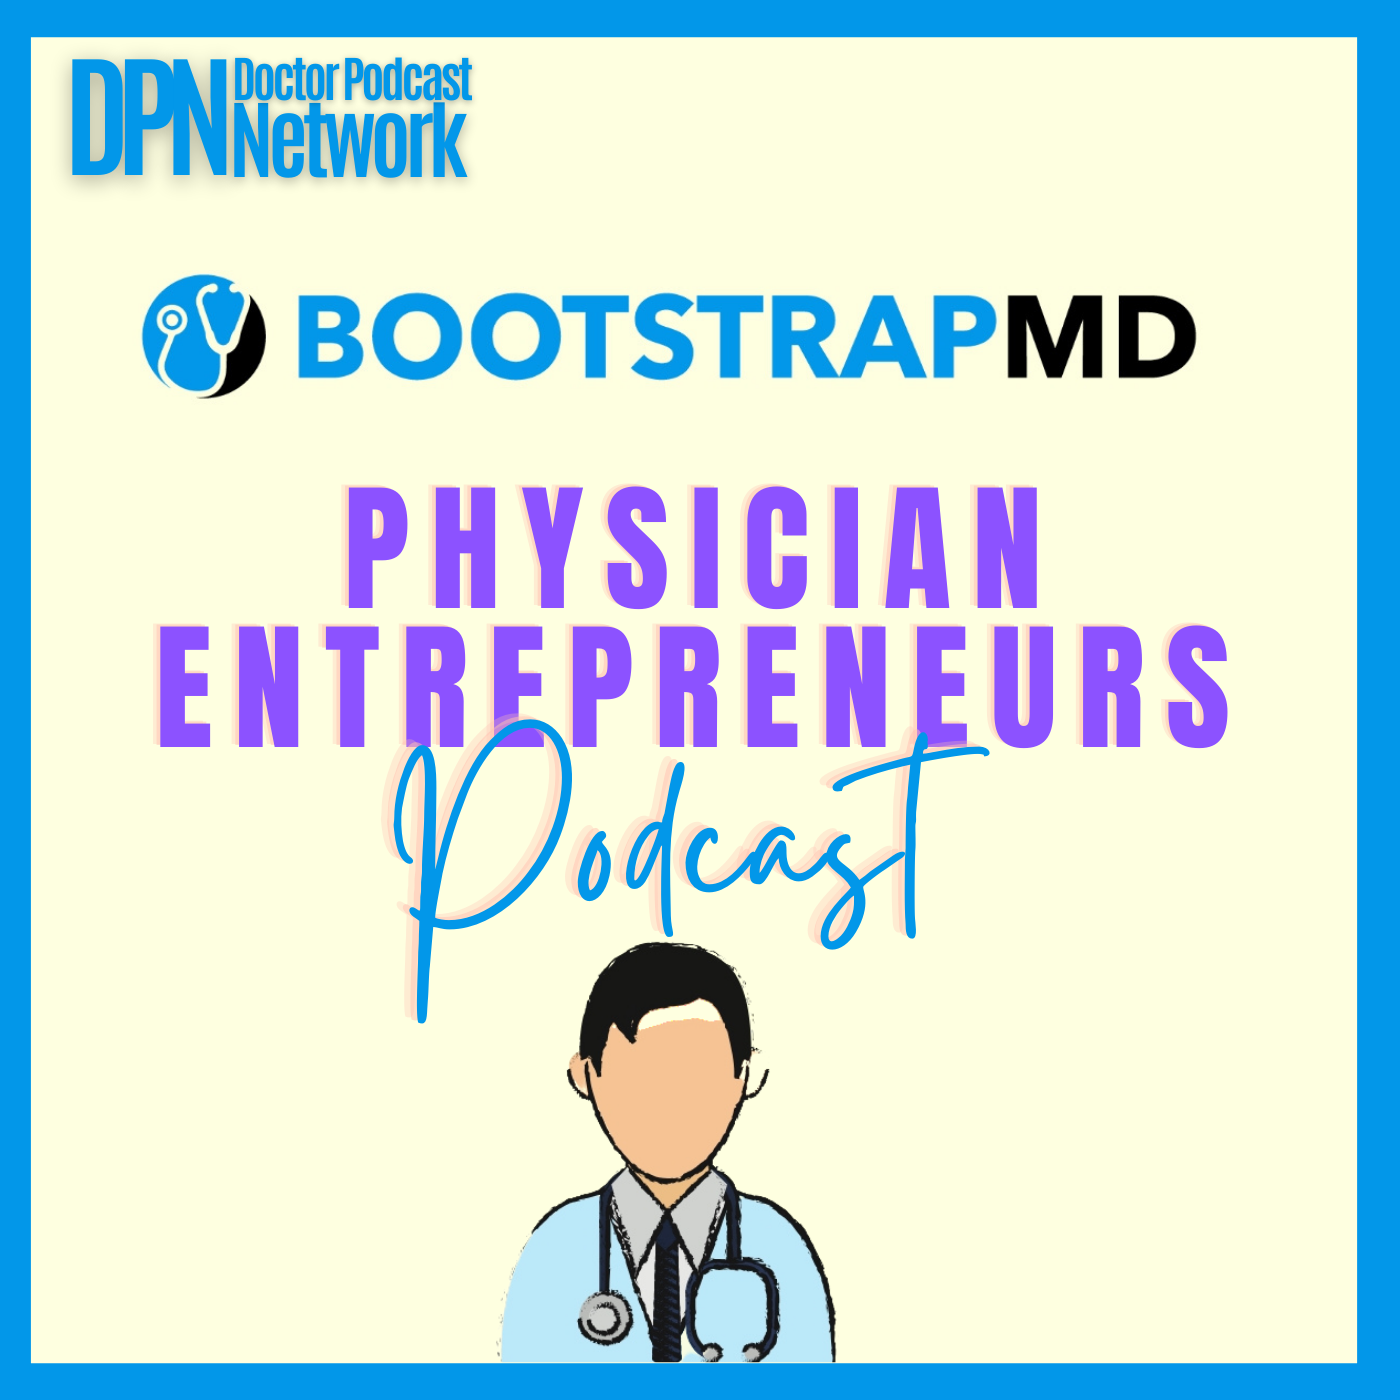 BootstrapMD - Physician Entrepreneurs Podcast with Dr. Mike Woo-Ming show art